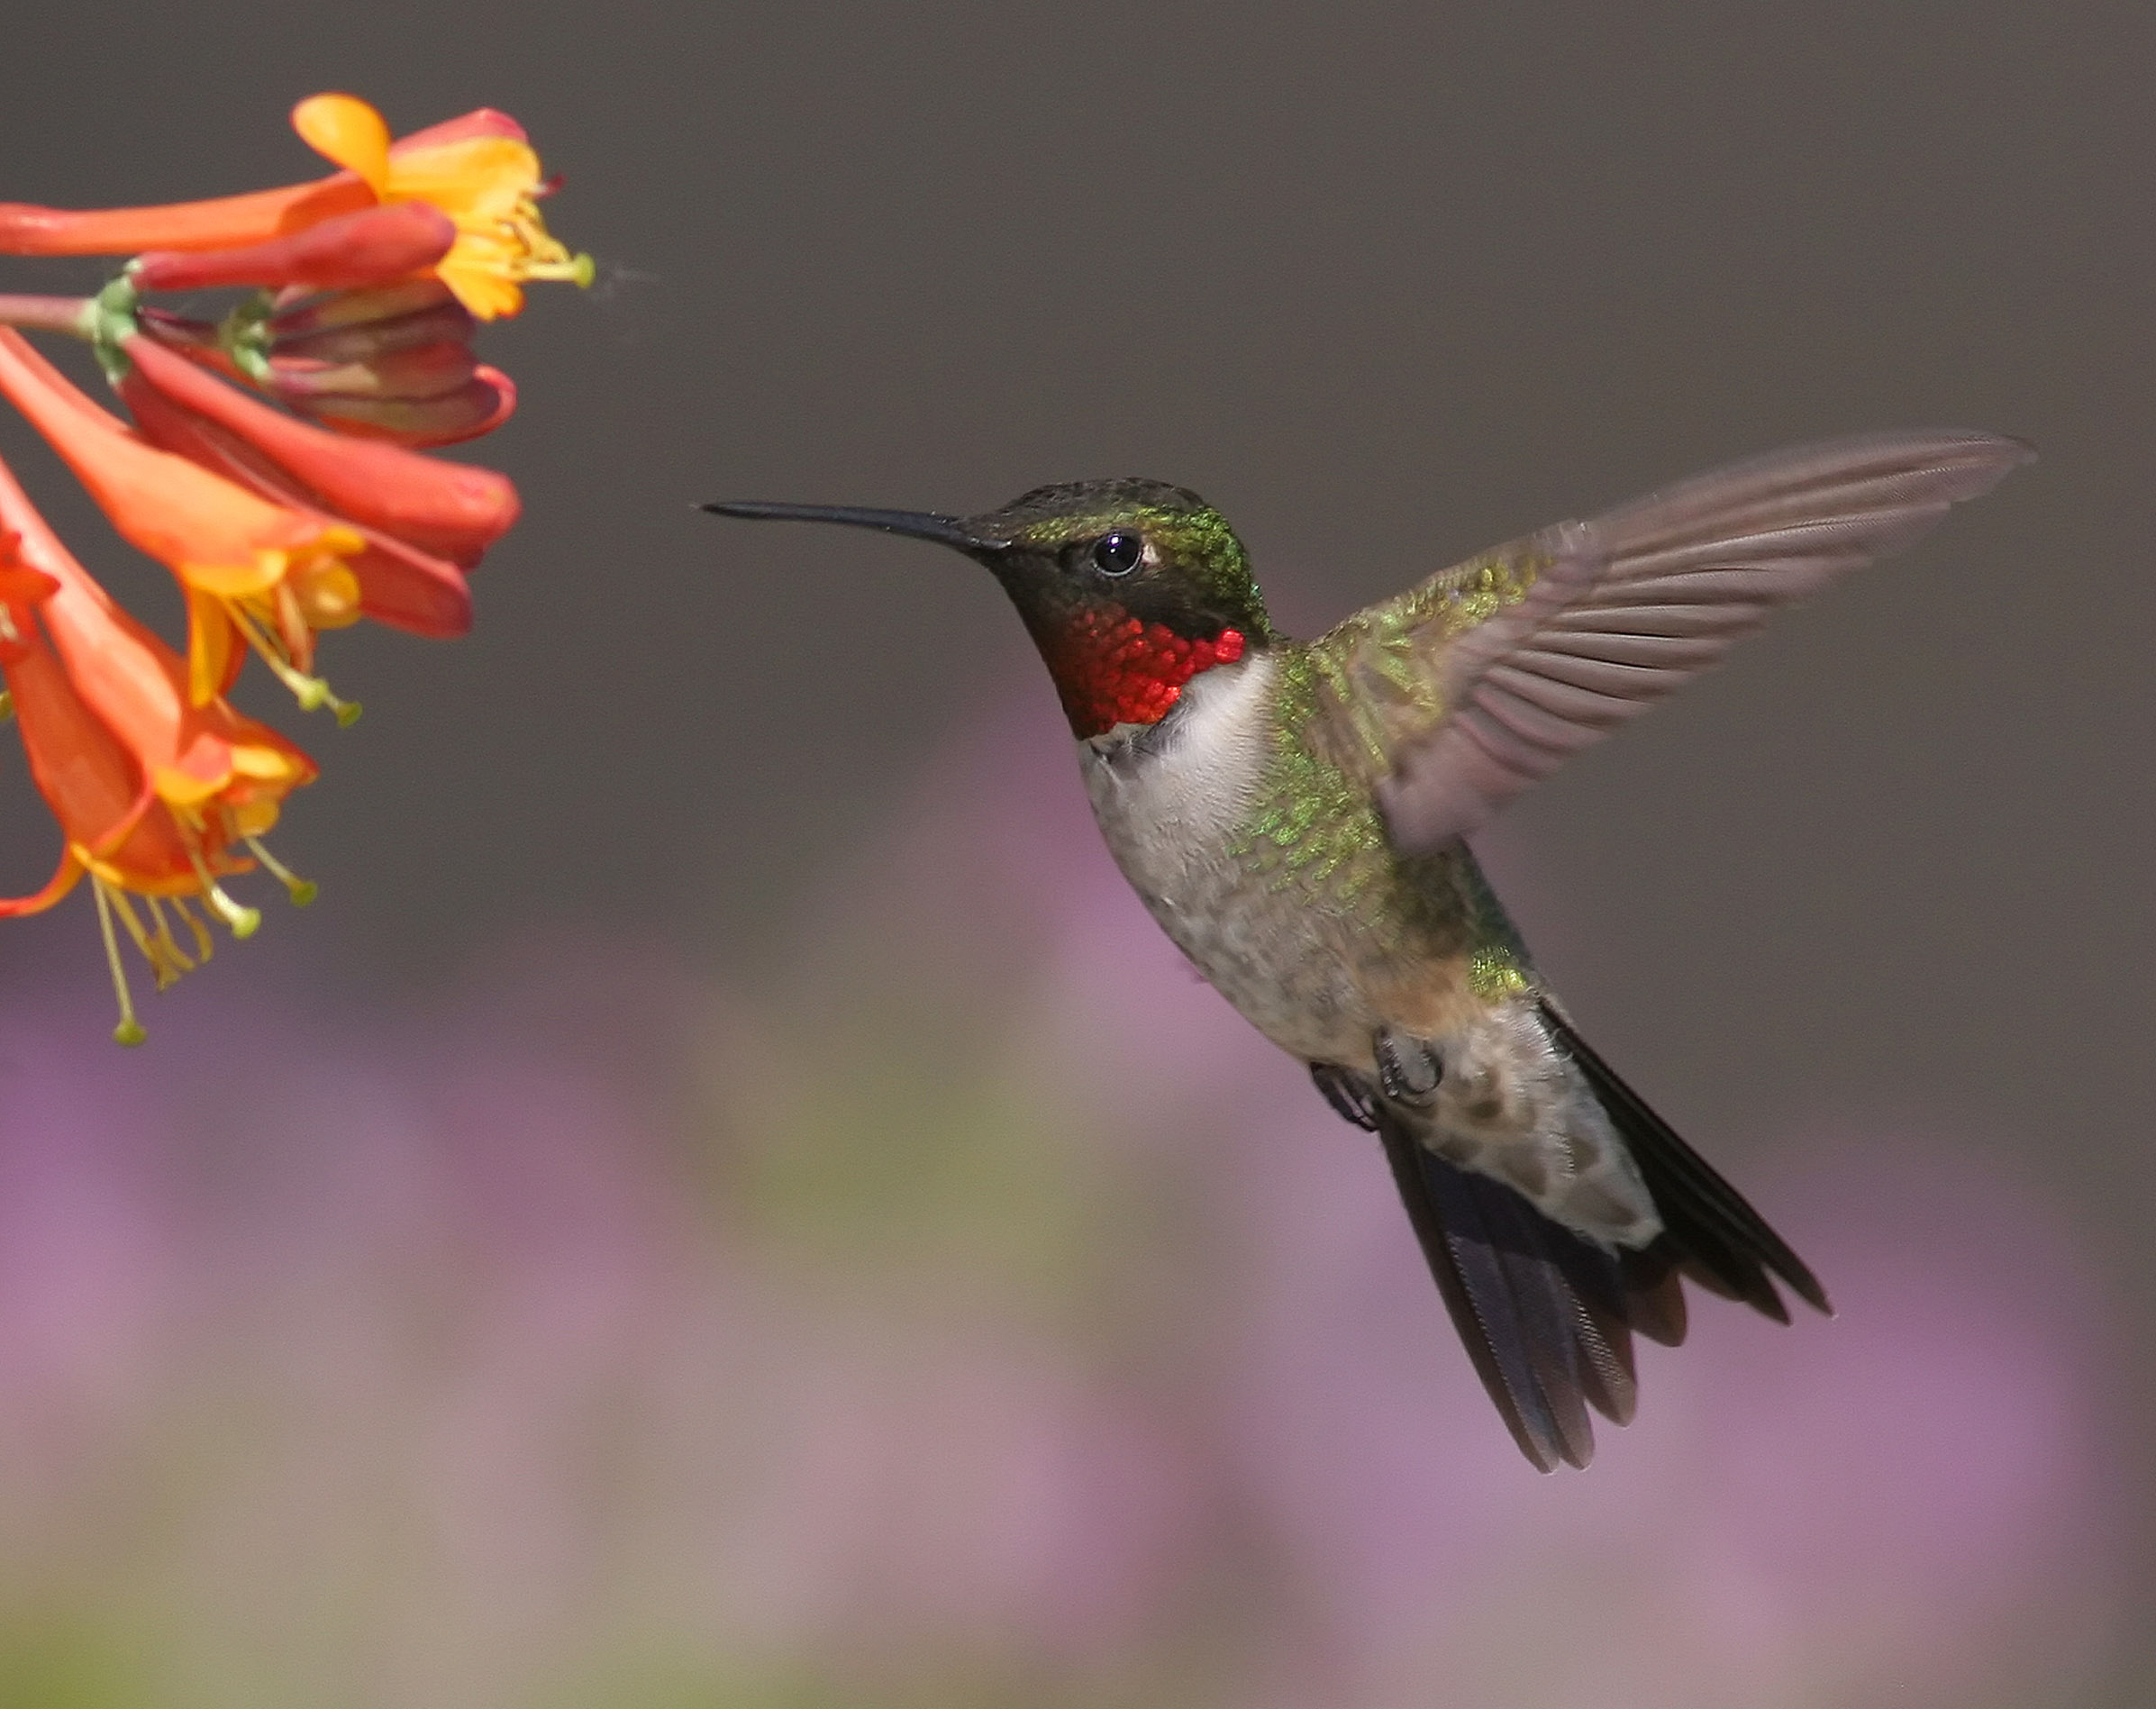 Image of a hummingbird. Geddit? Anyway, humming it out is a great way to help when writing lyrics.